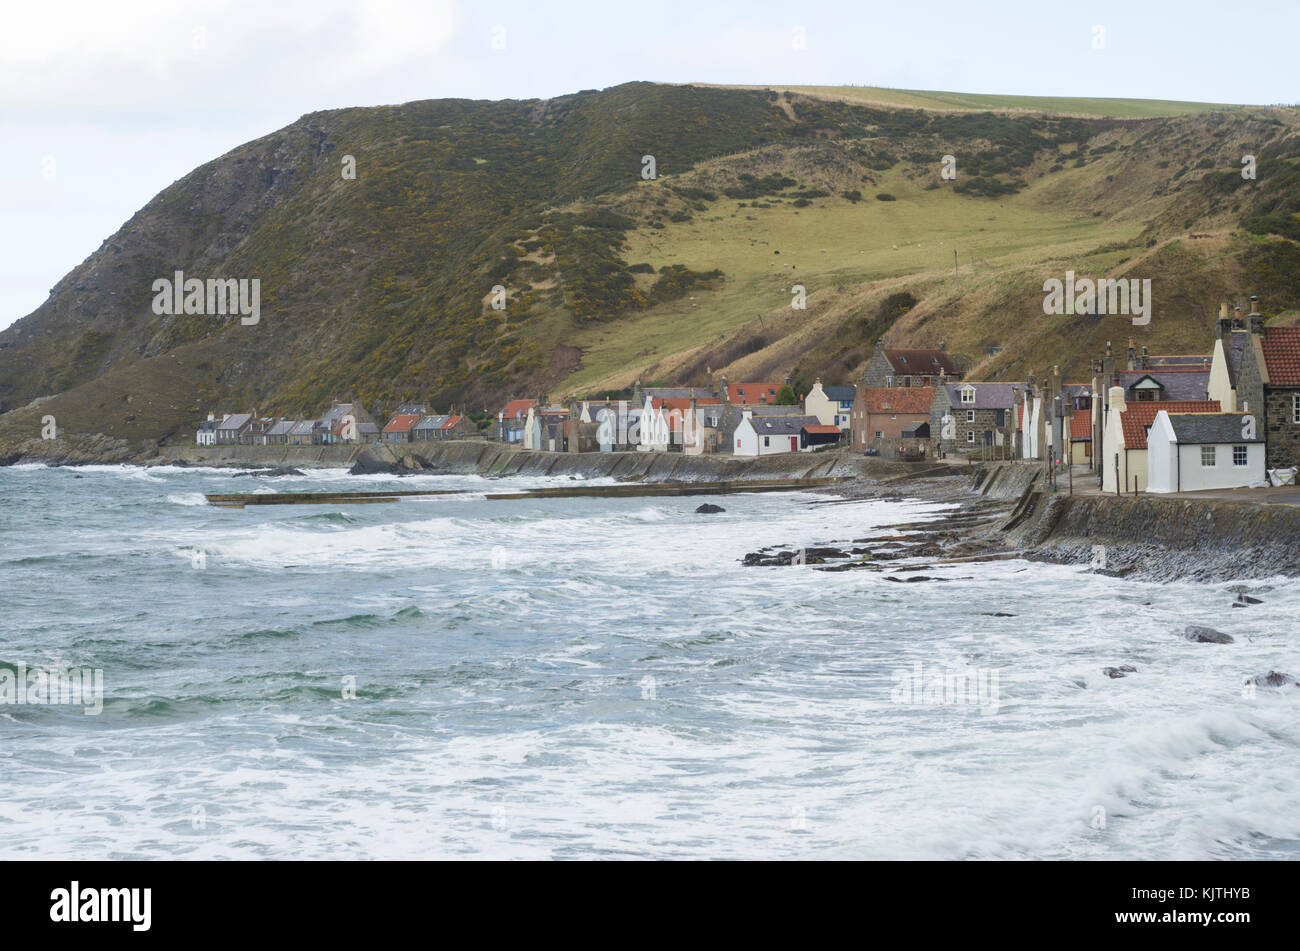 Small fishing village of Crovie, Abereenshire, Scotland, Great Britain Stock Photo